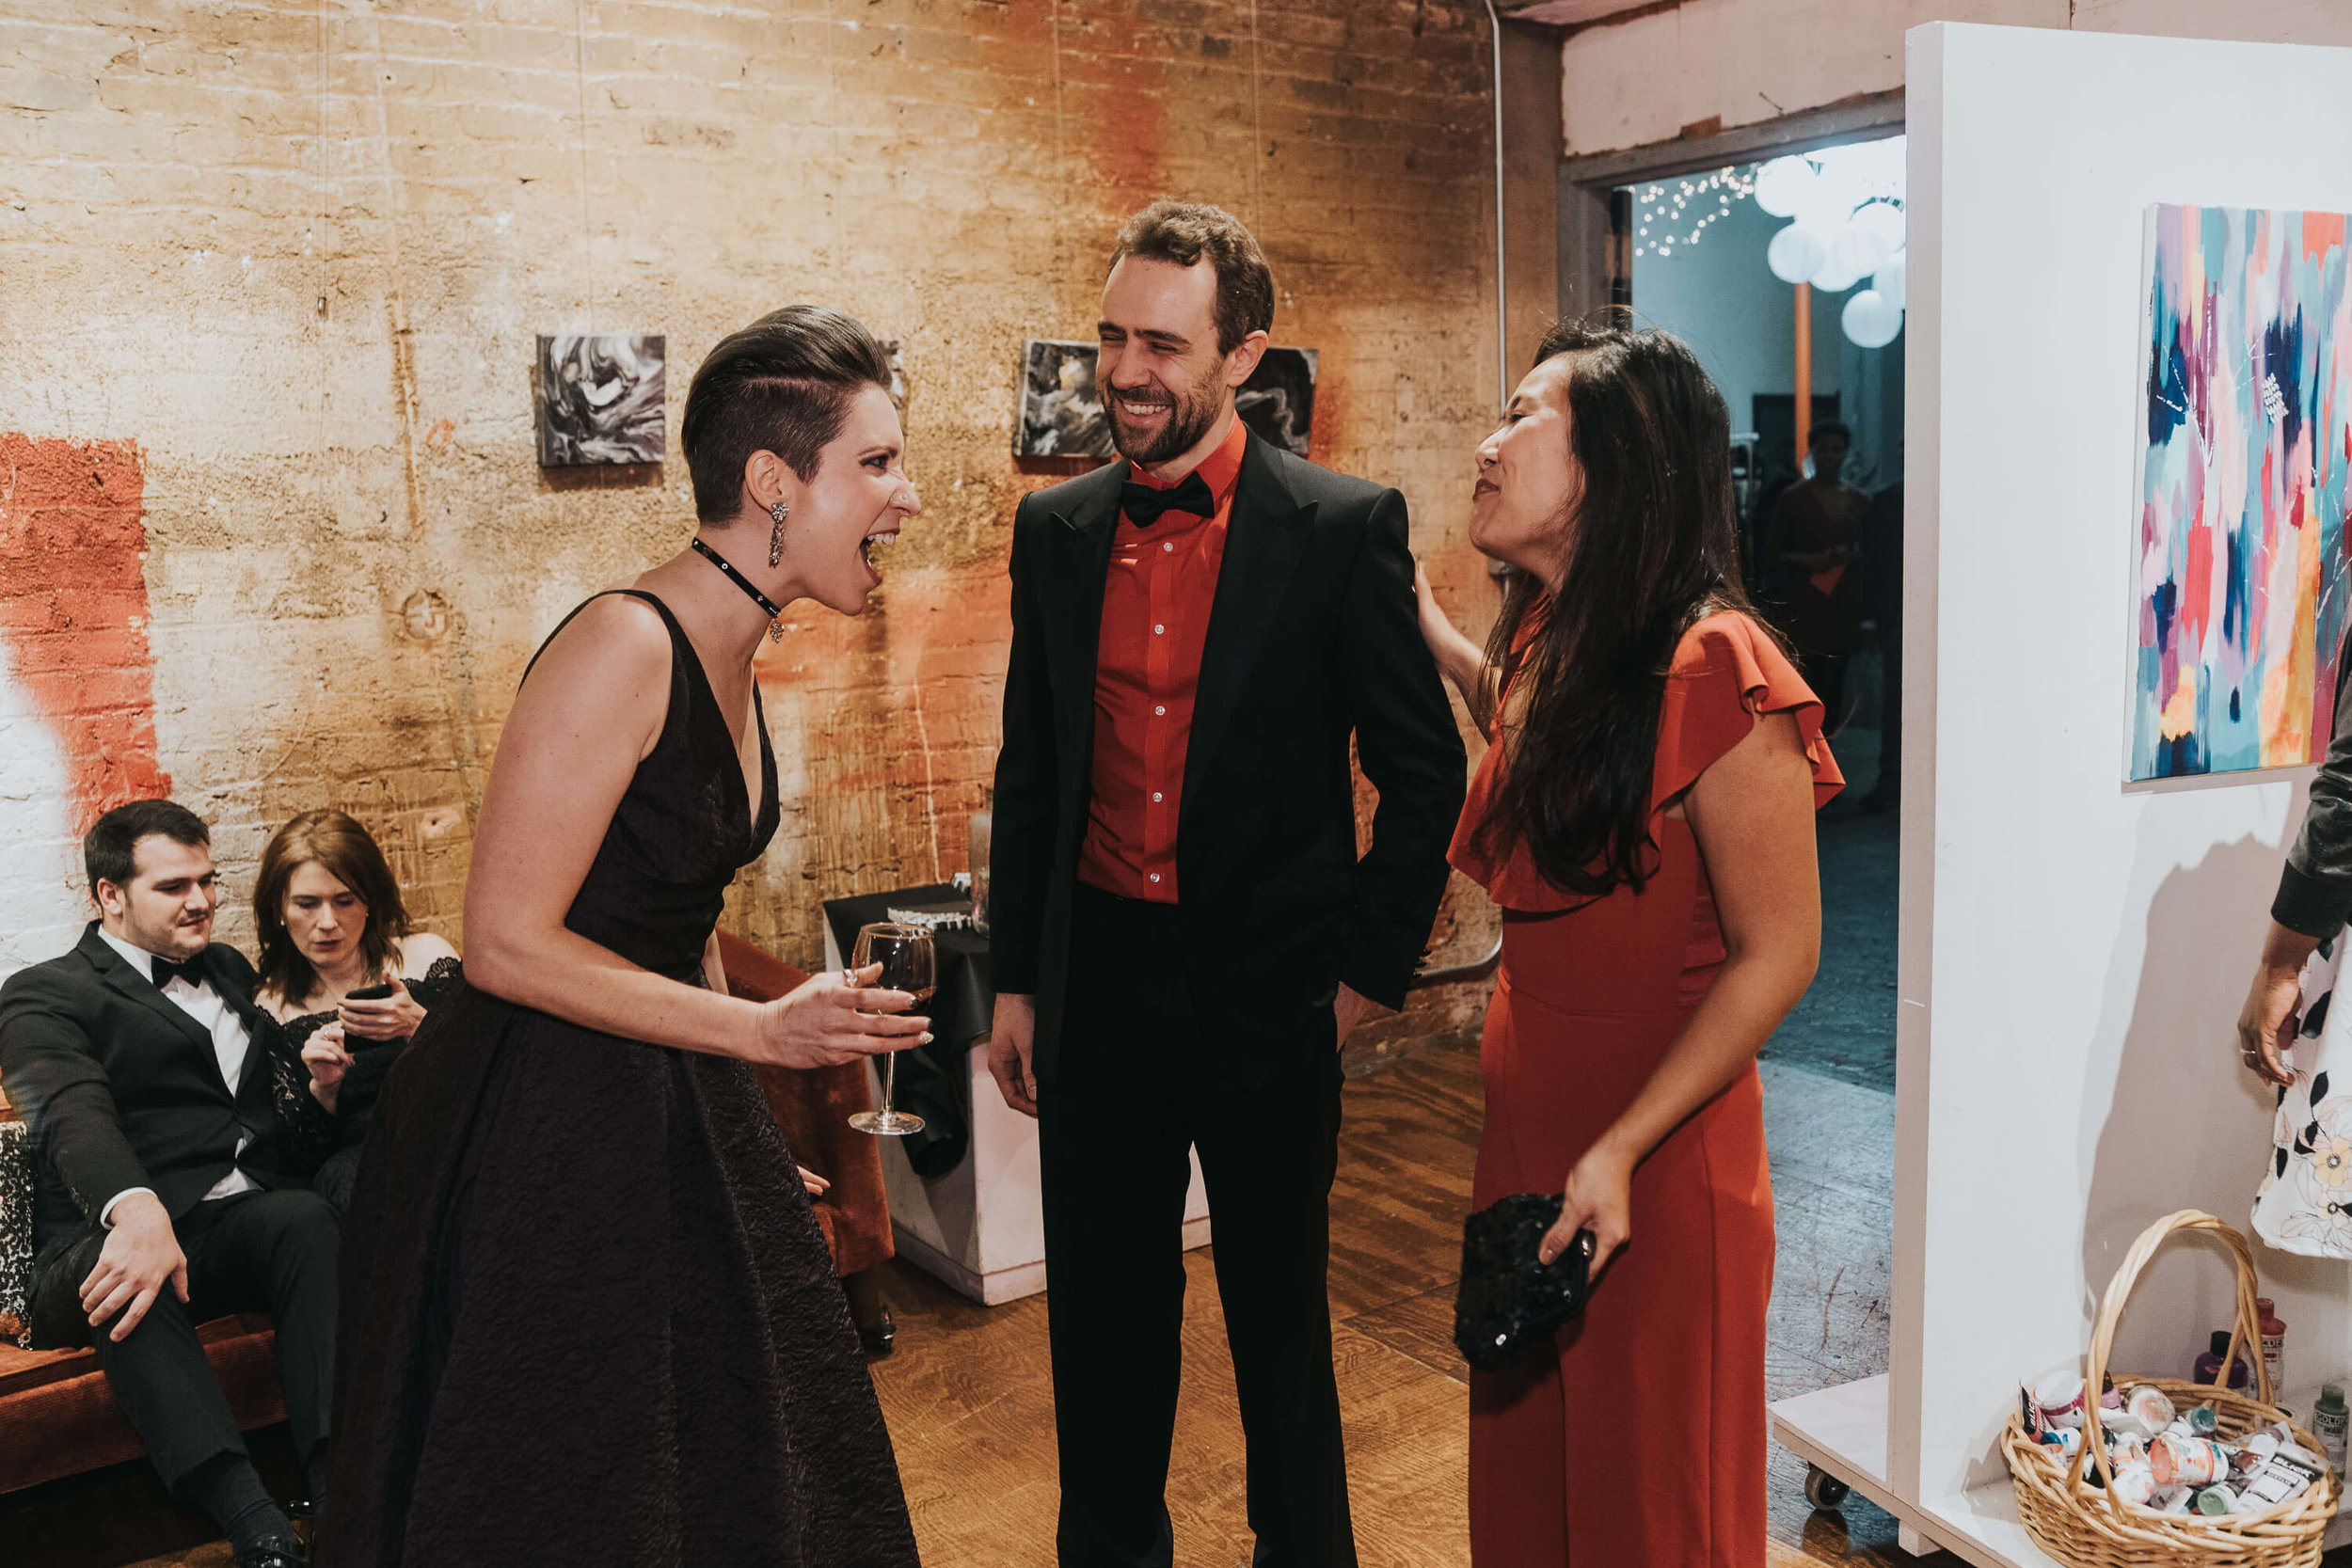 Two women and a man laughing at a party